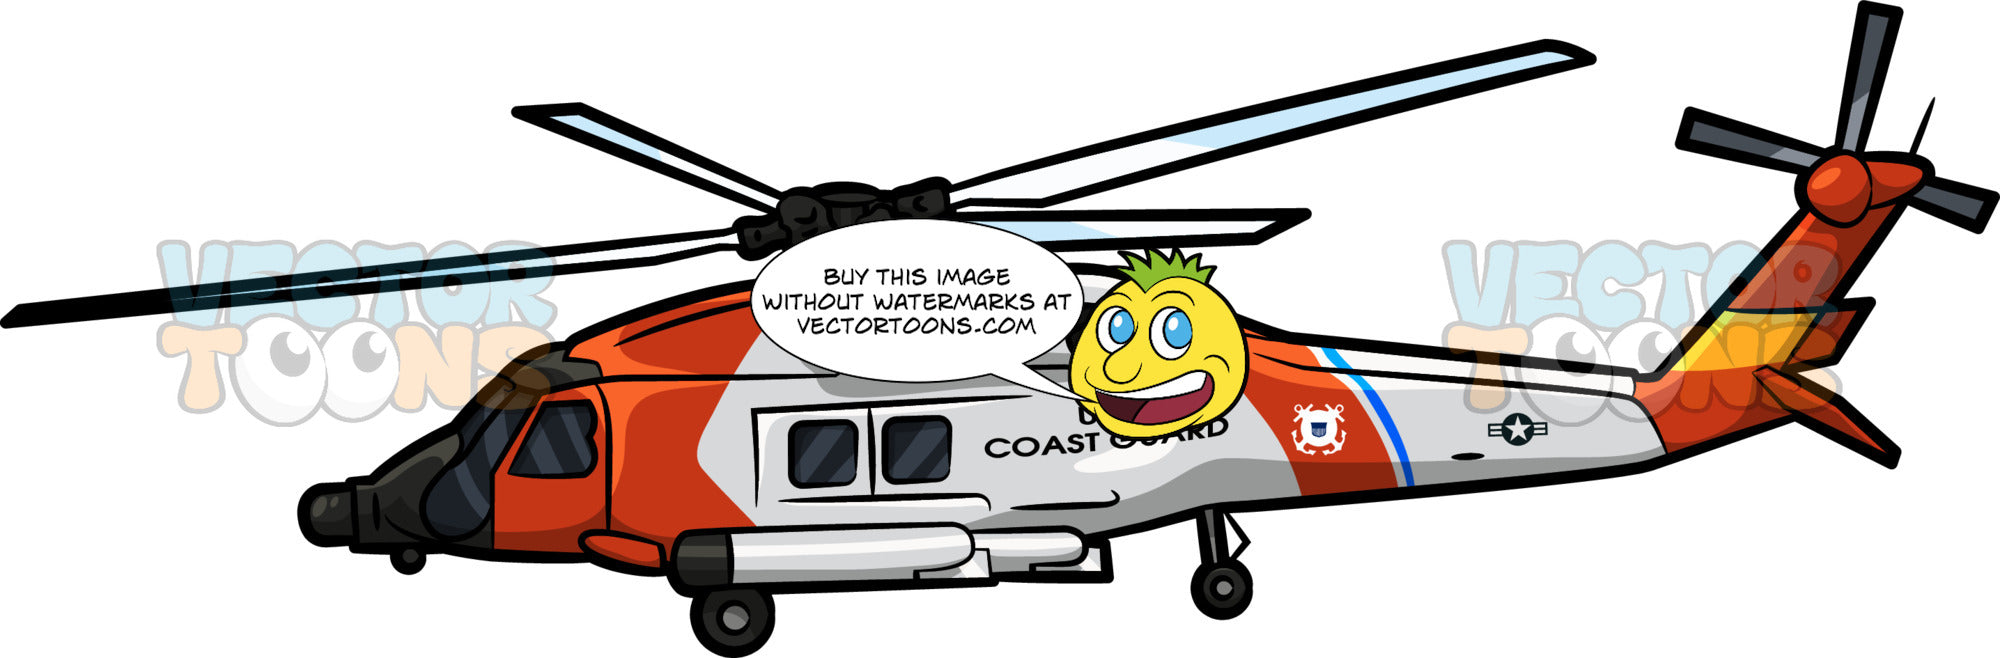 The USCGC Jayhawk helicopter